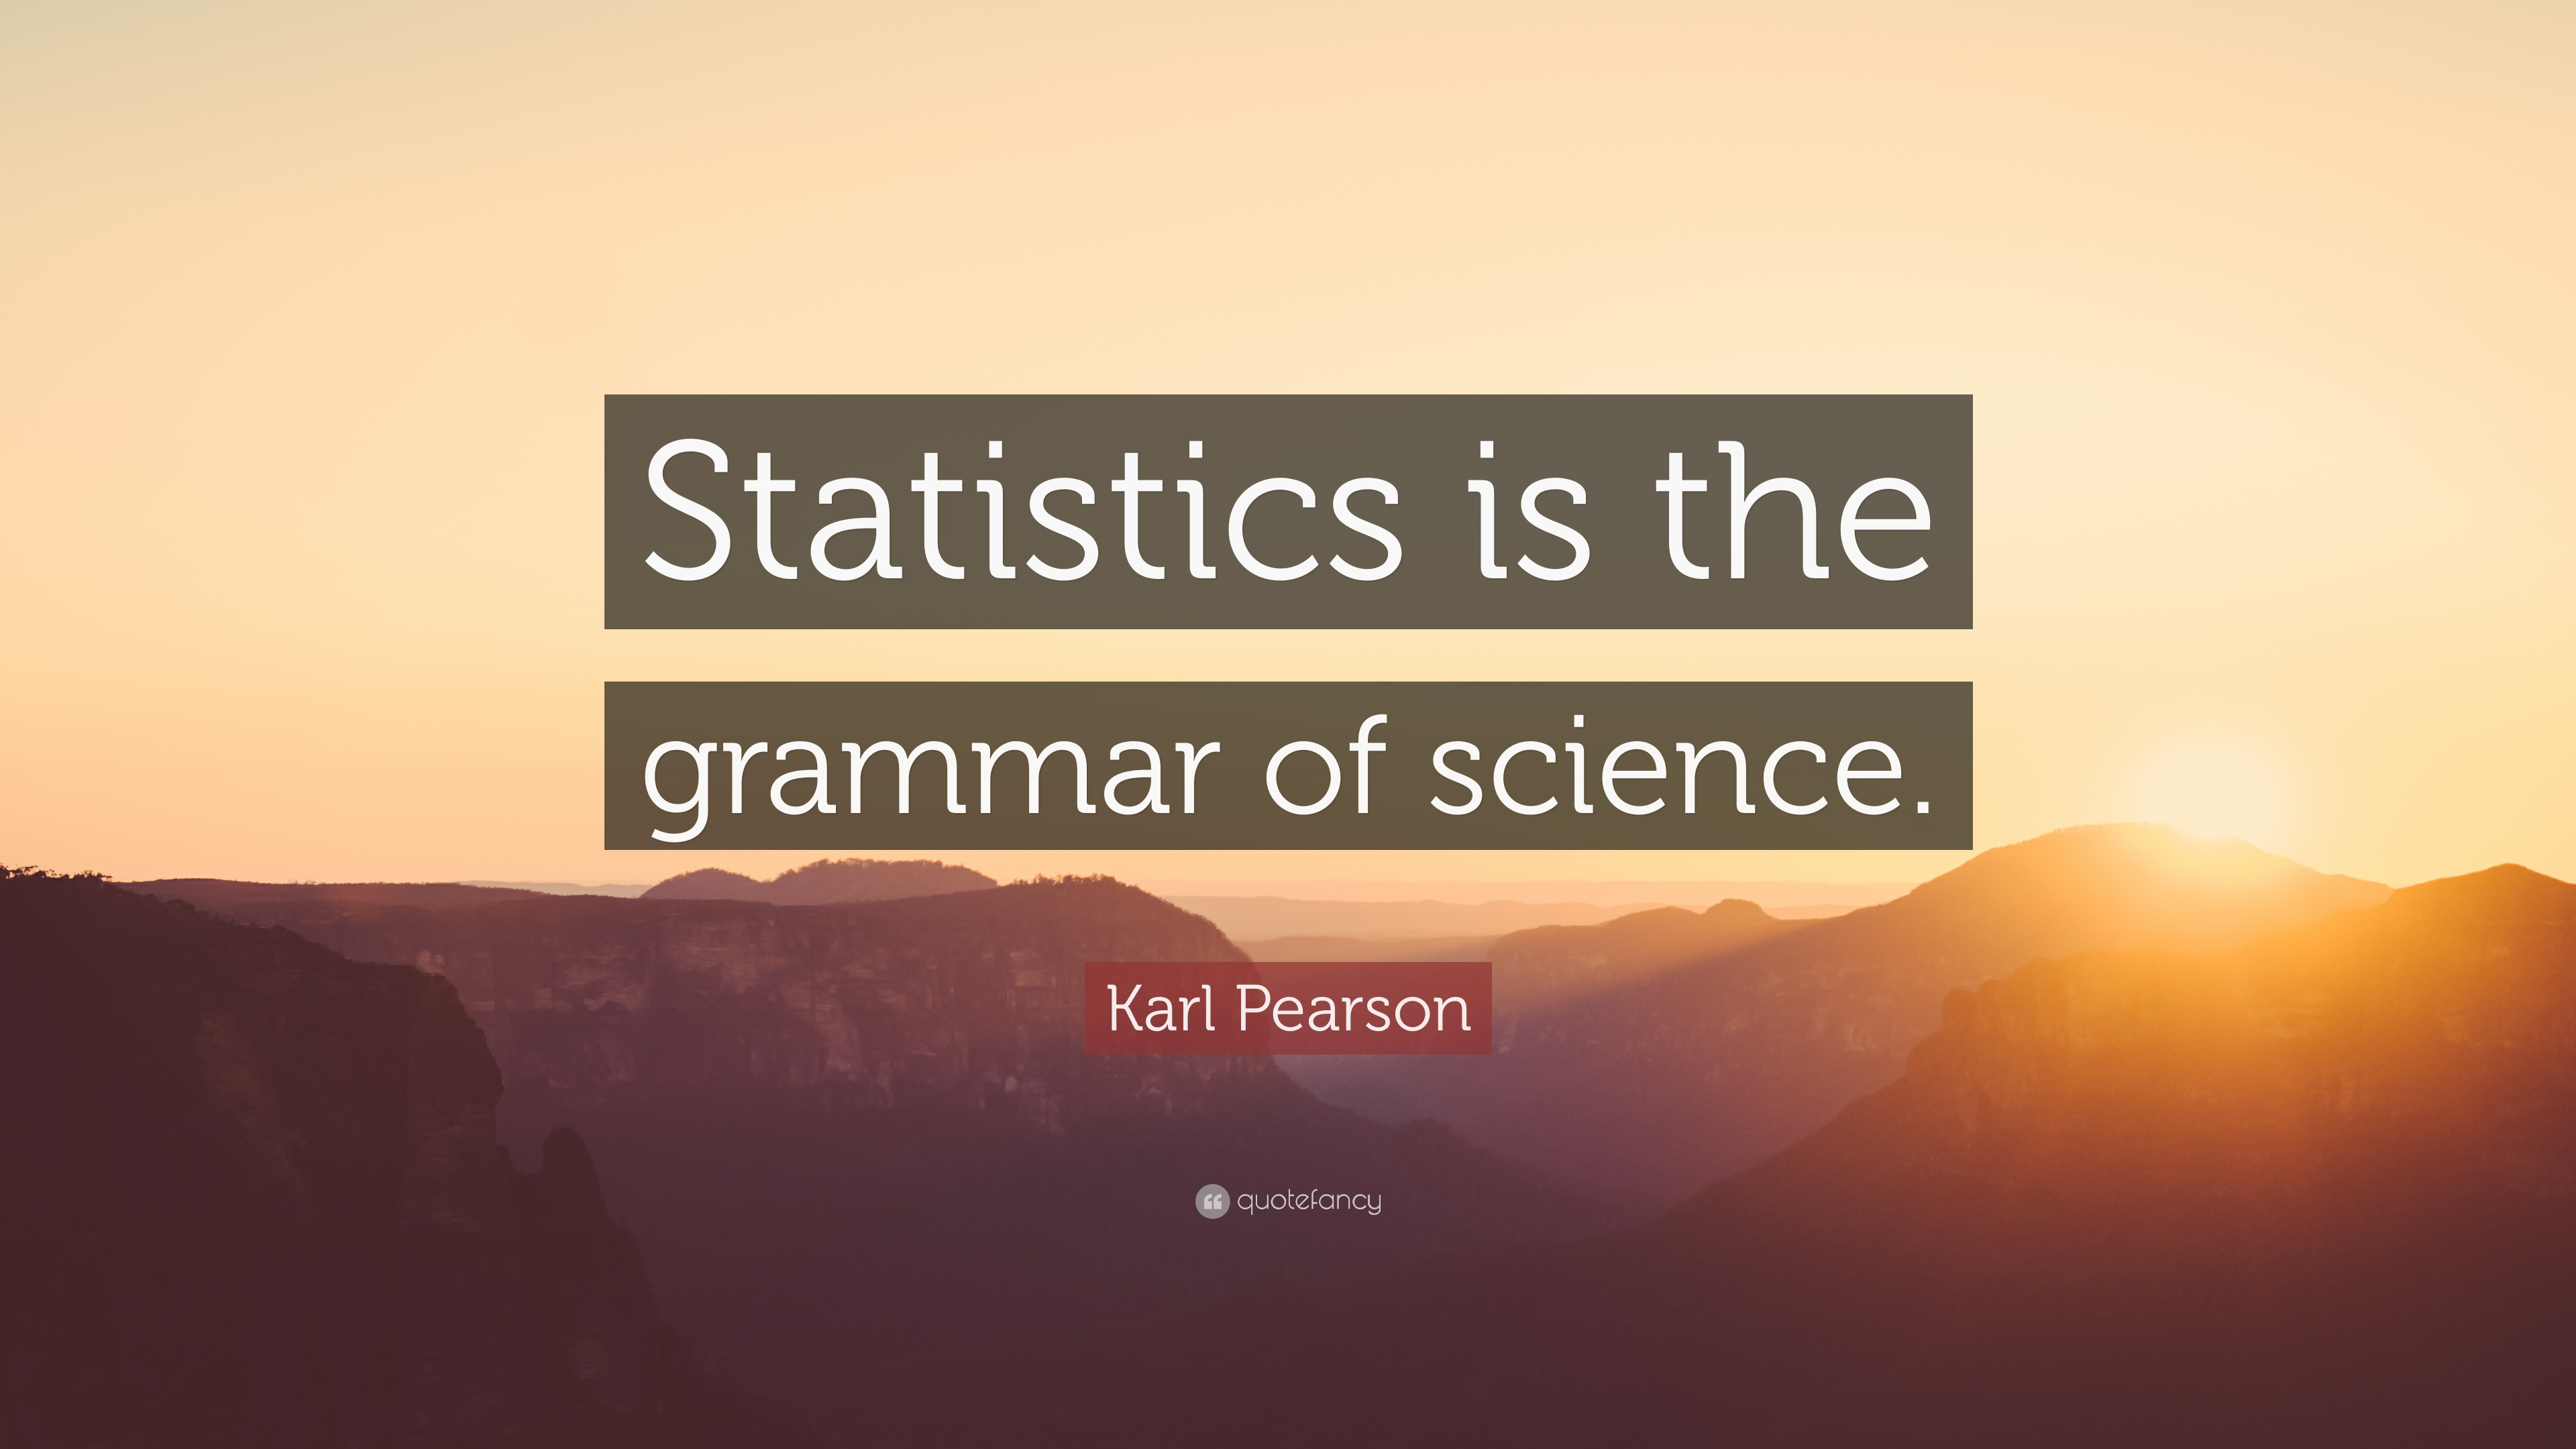 Karl Pearson Quotes 11 Wallpapers